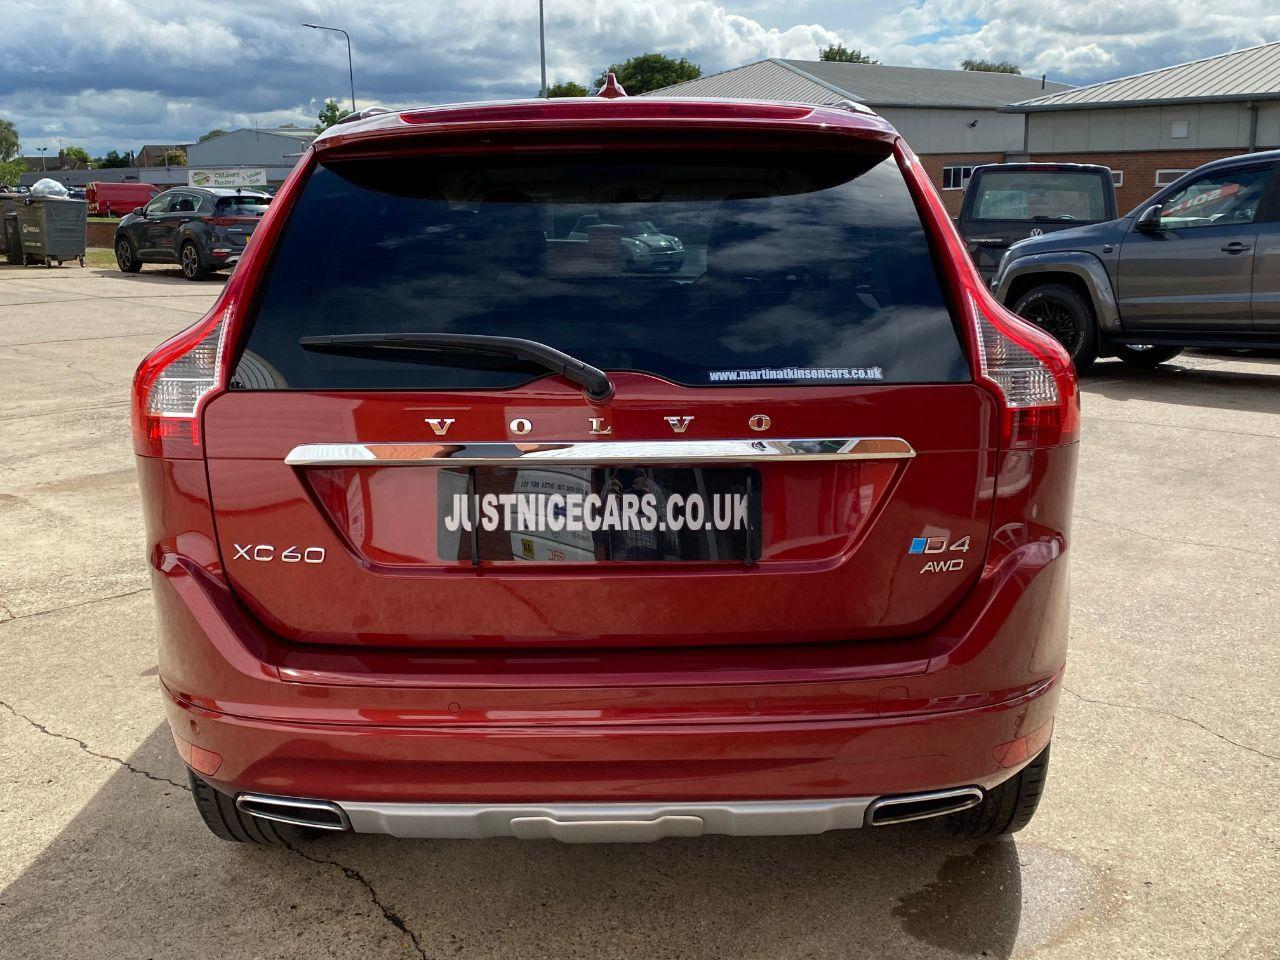 Volvo XC60 2.4 D4 SE Lux Nav 190BHP 5dr AWD Geartronic Automatic Estate Diesel Flamenco Red Metallic